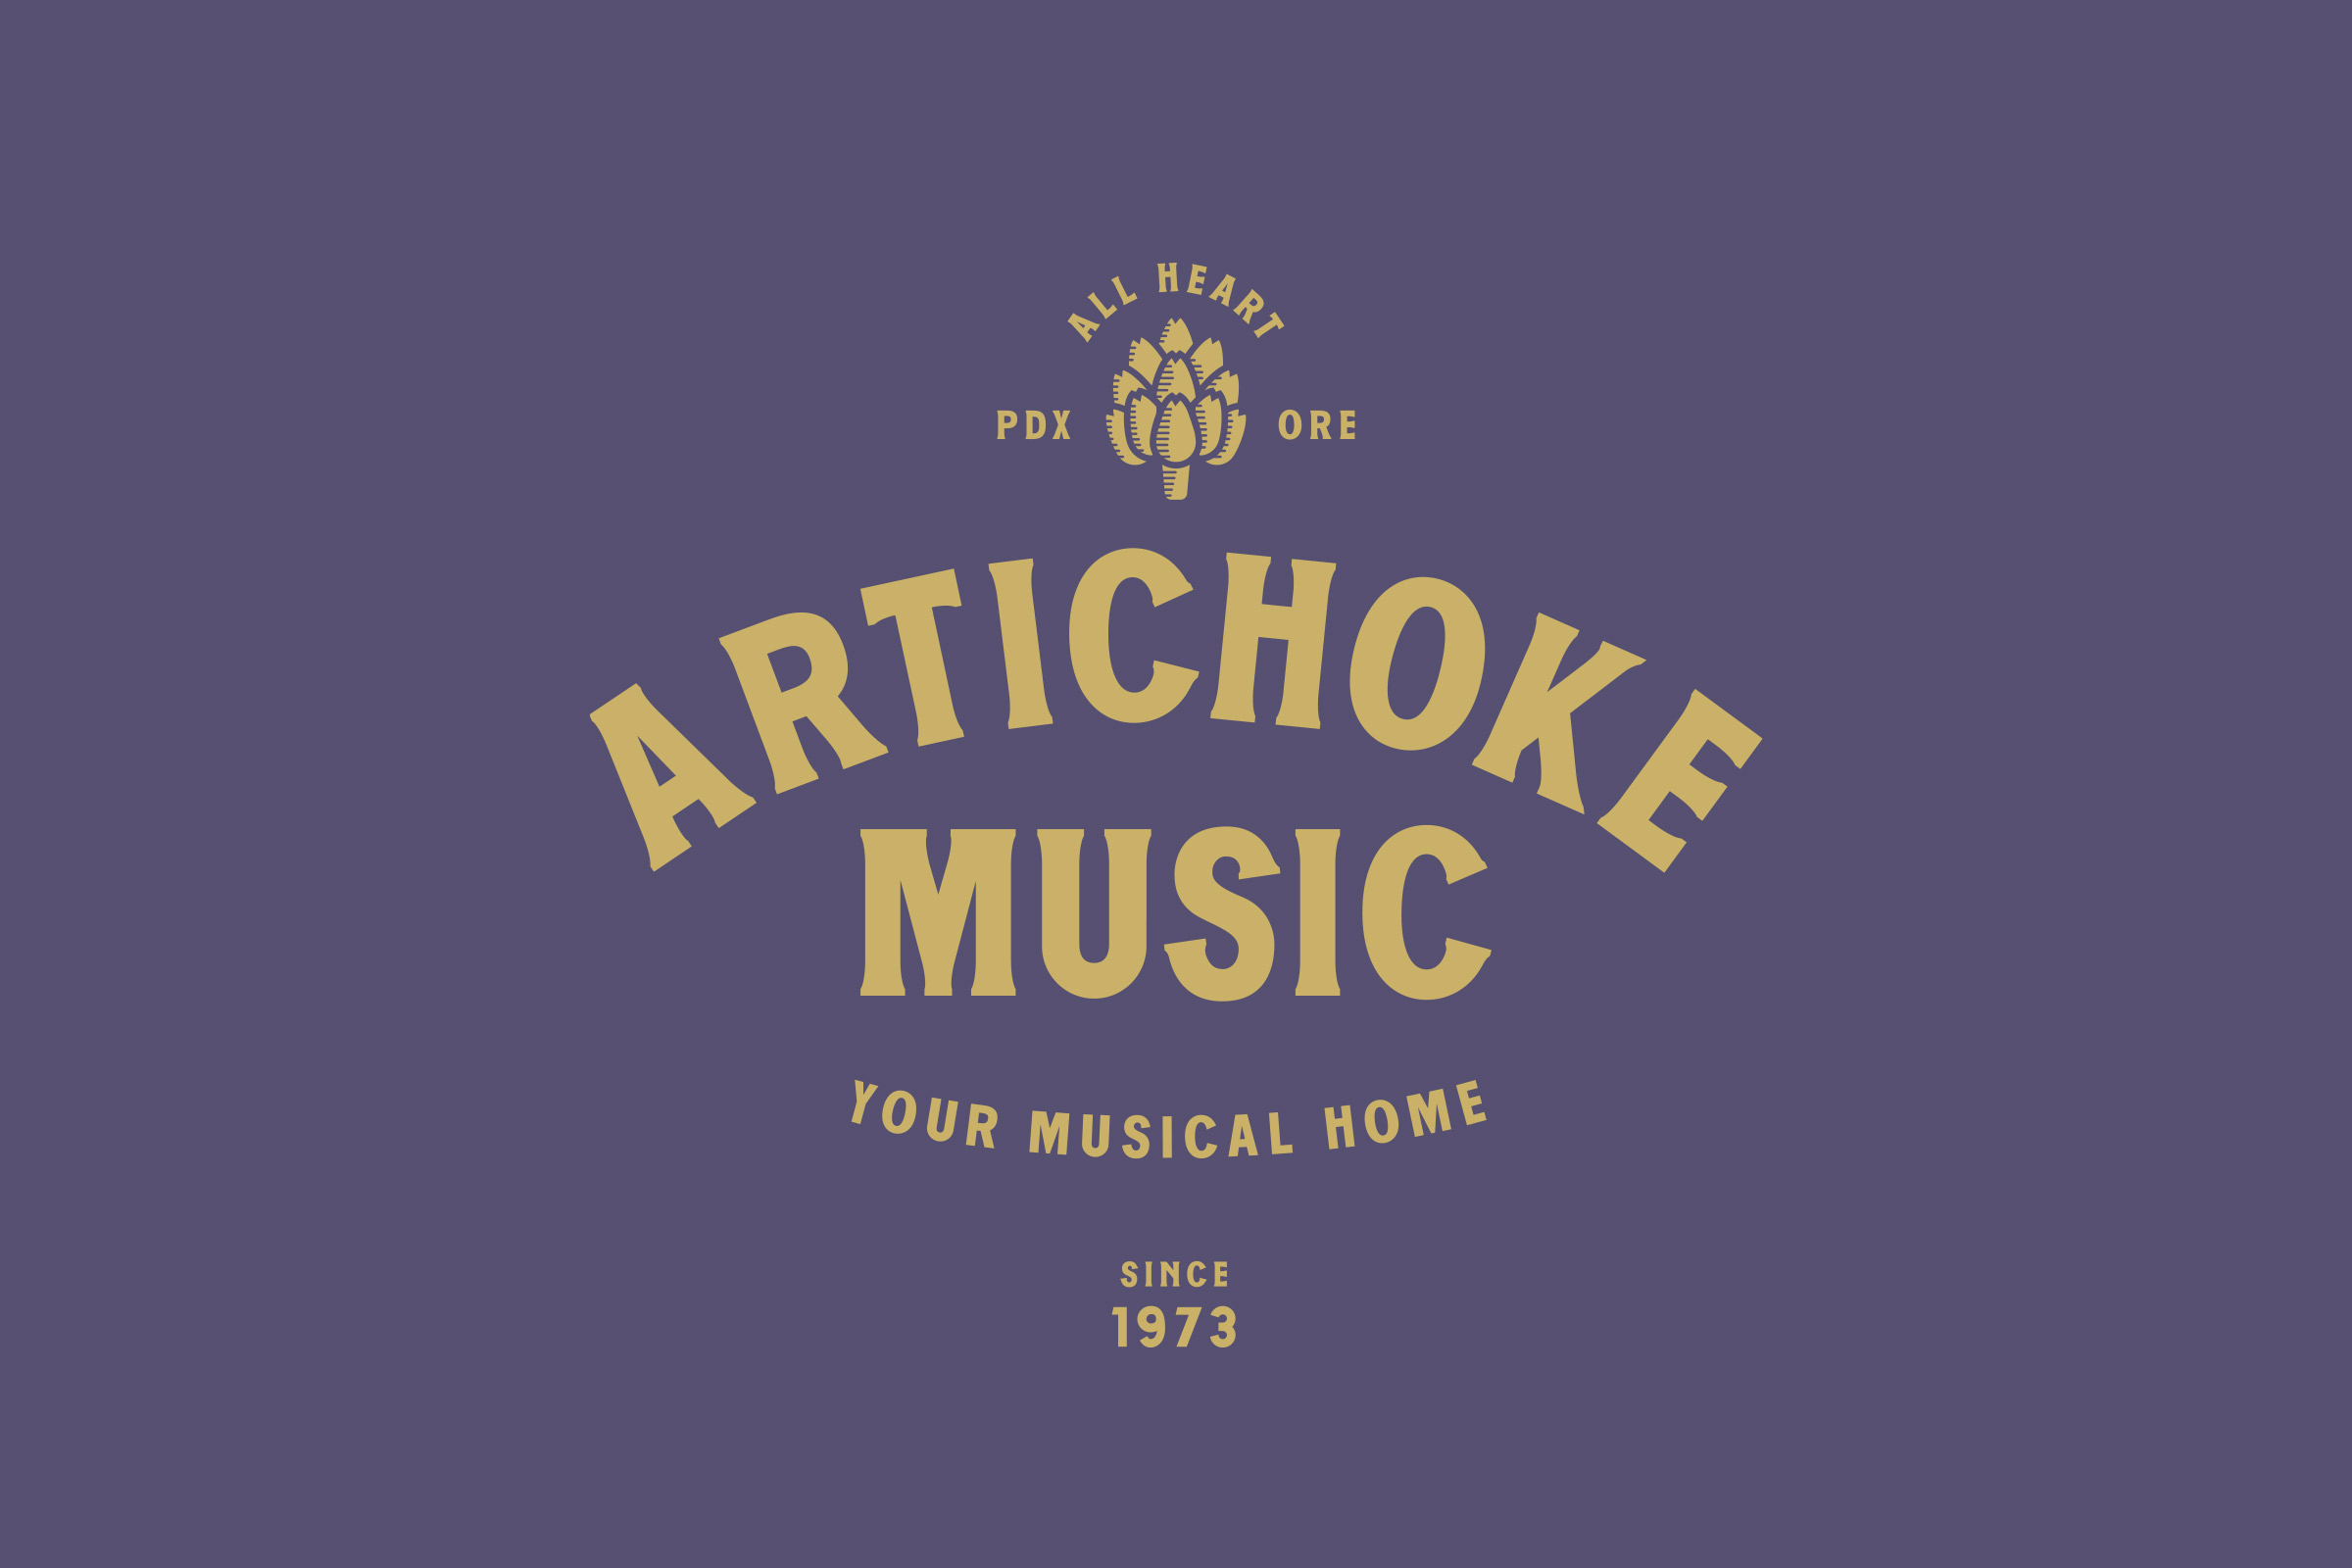 Artichoke Music Wordmark